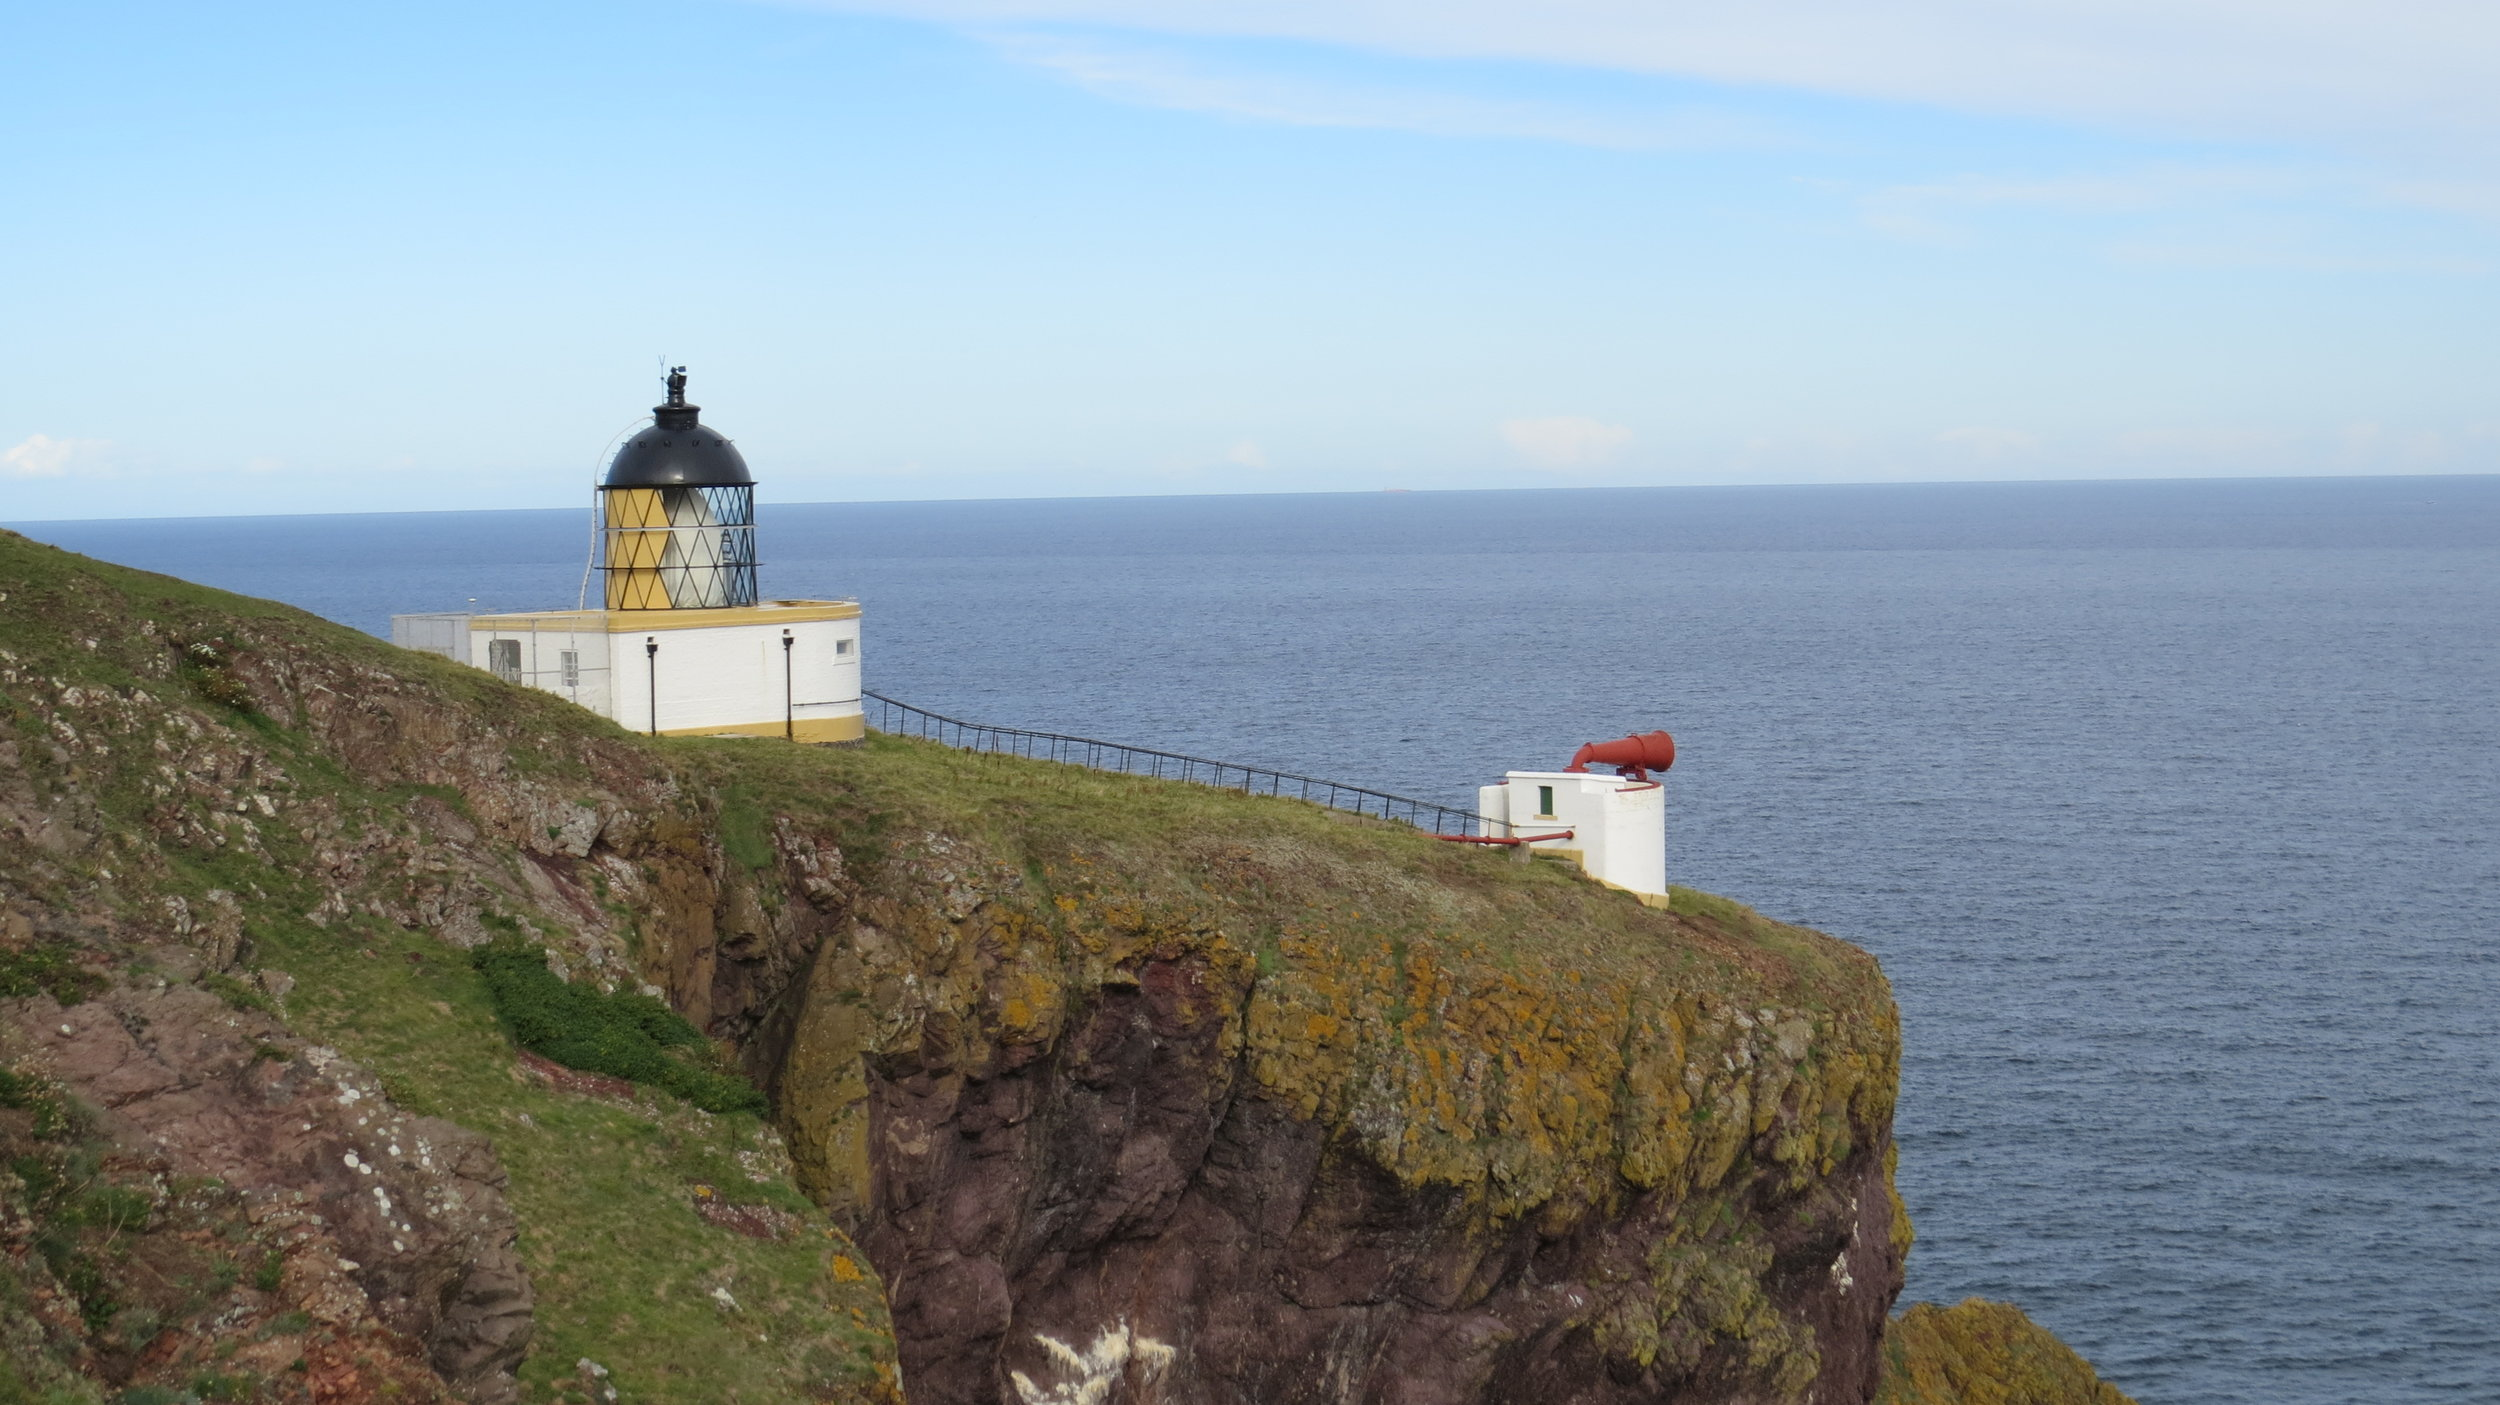 St Abb's Head Lighthouse